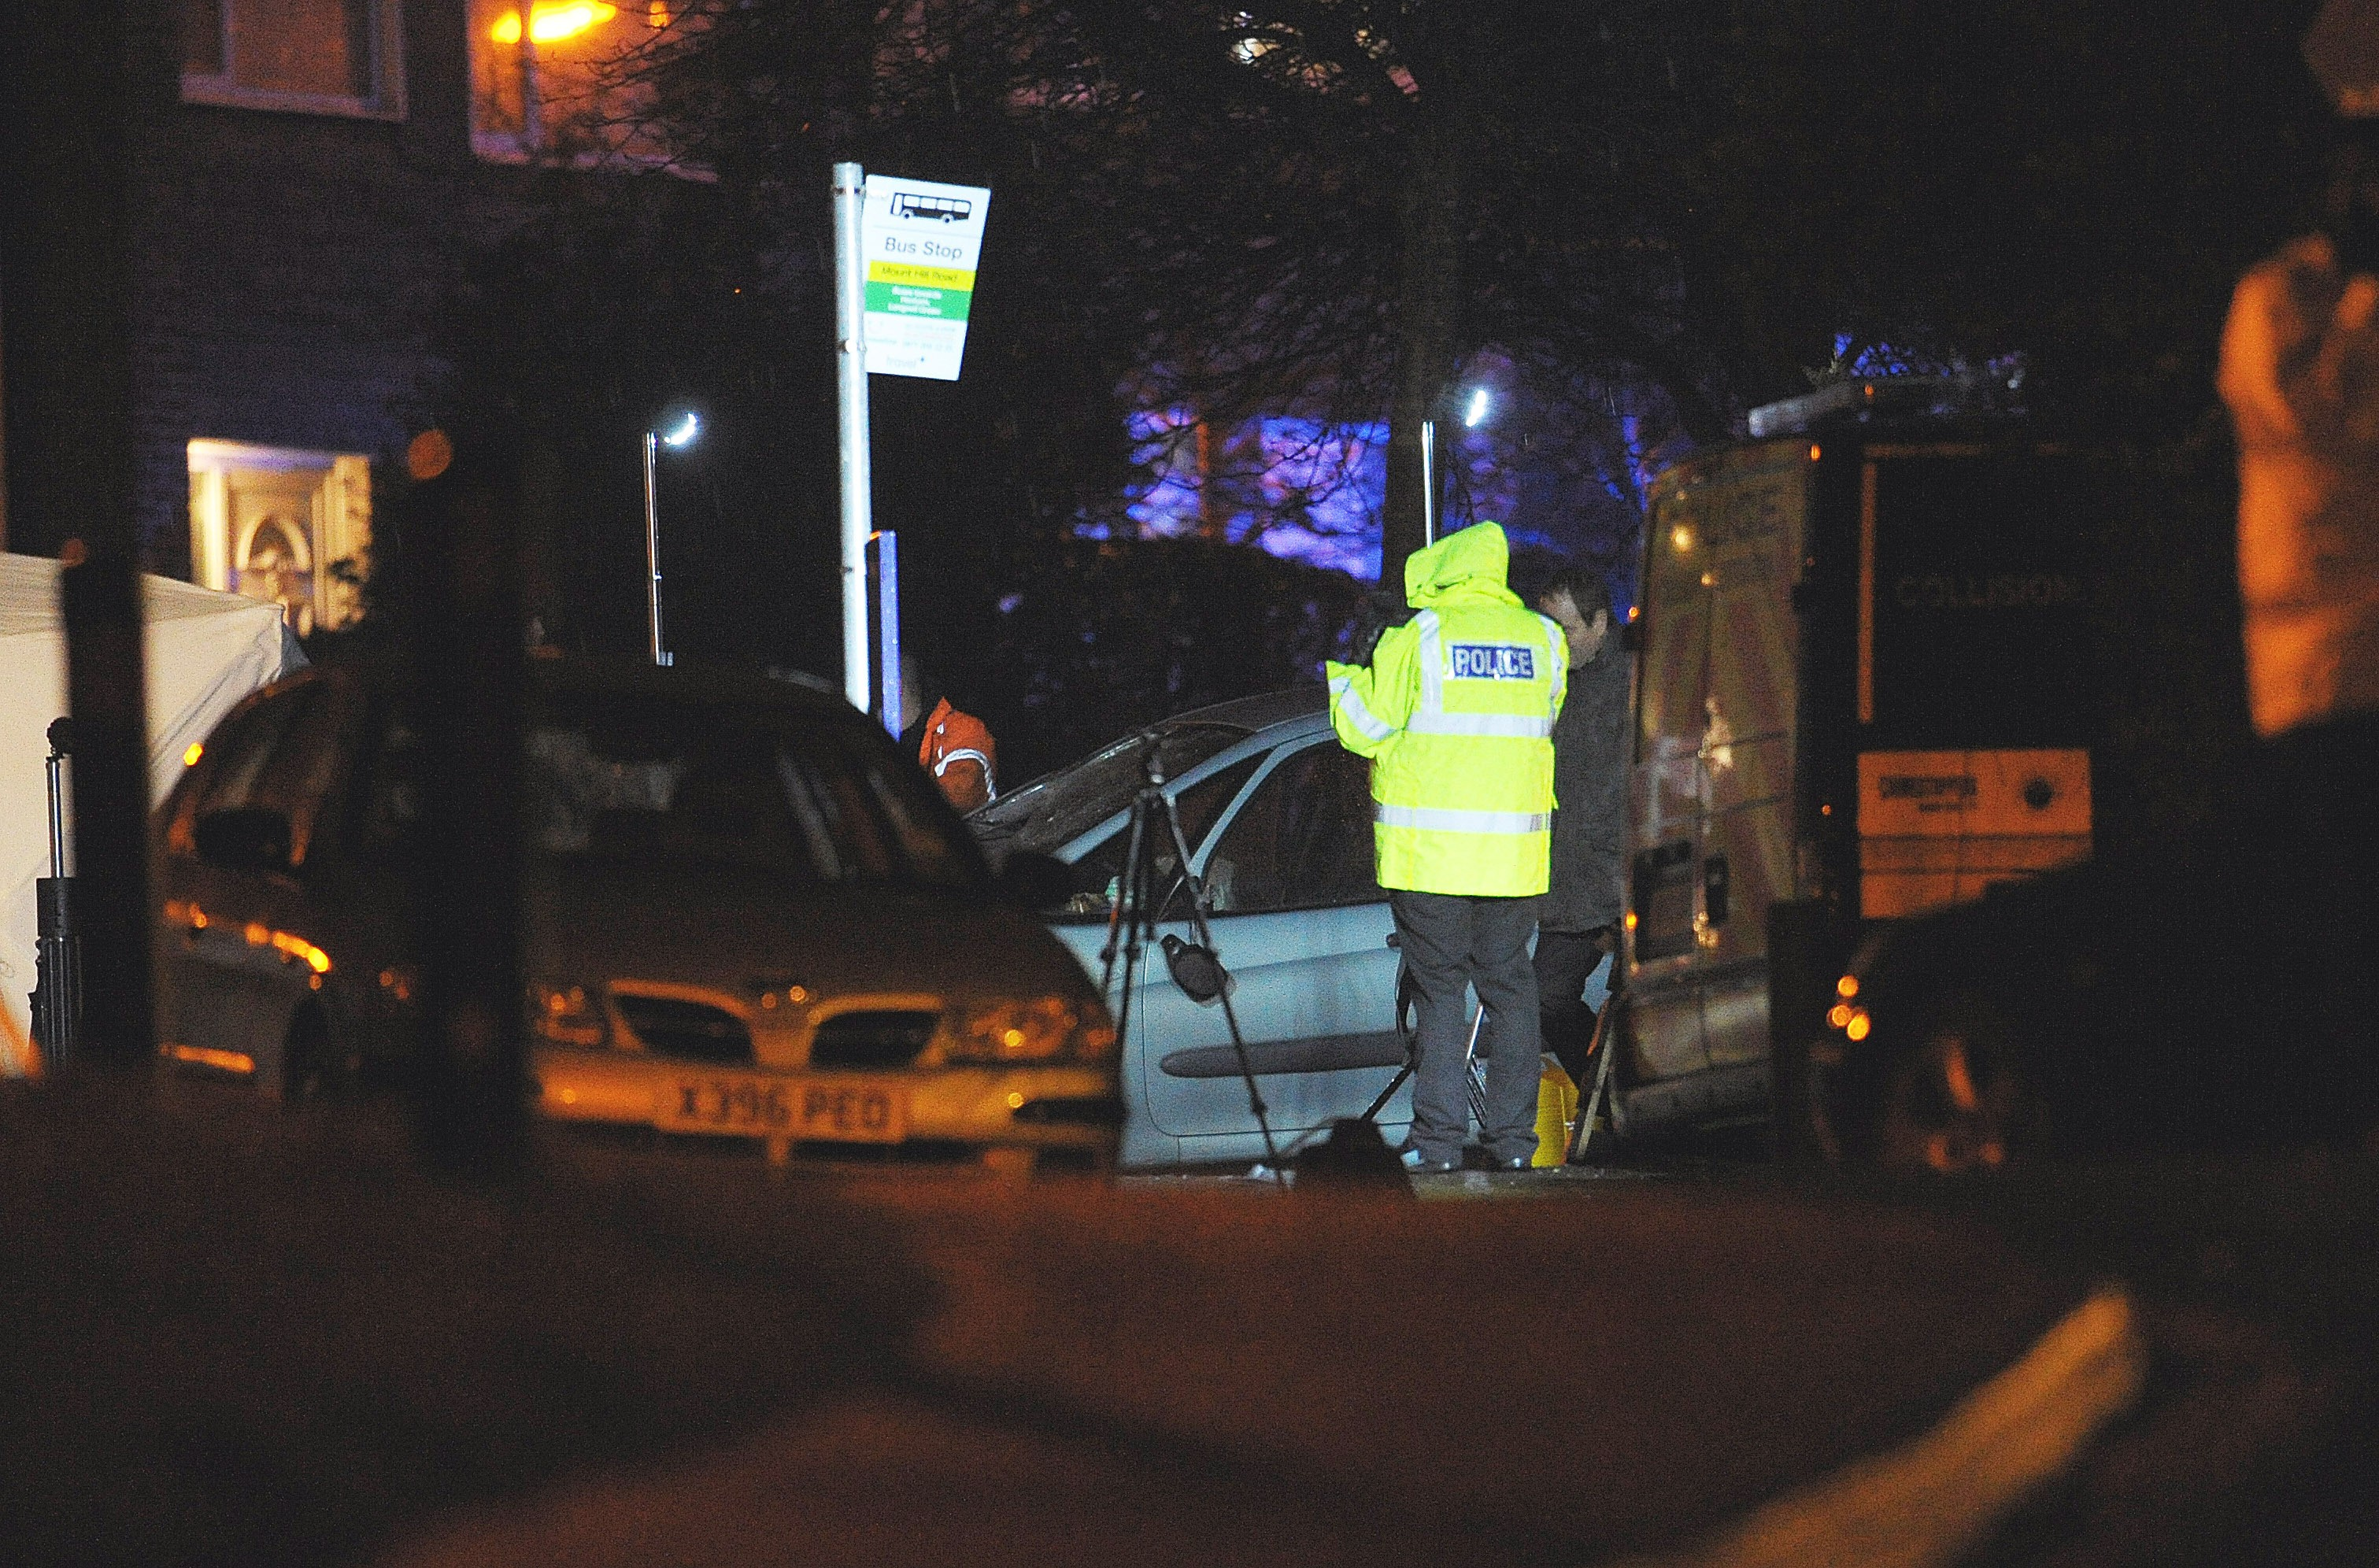 The Citroen Picasso surrounded by police investigators on Lower Hanham Road, Bristol